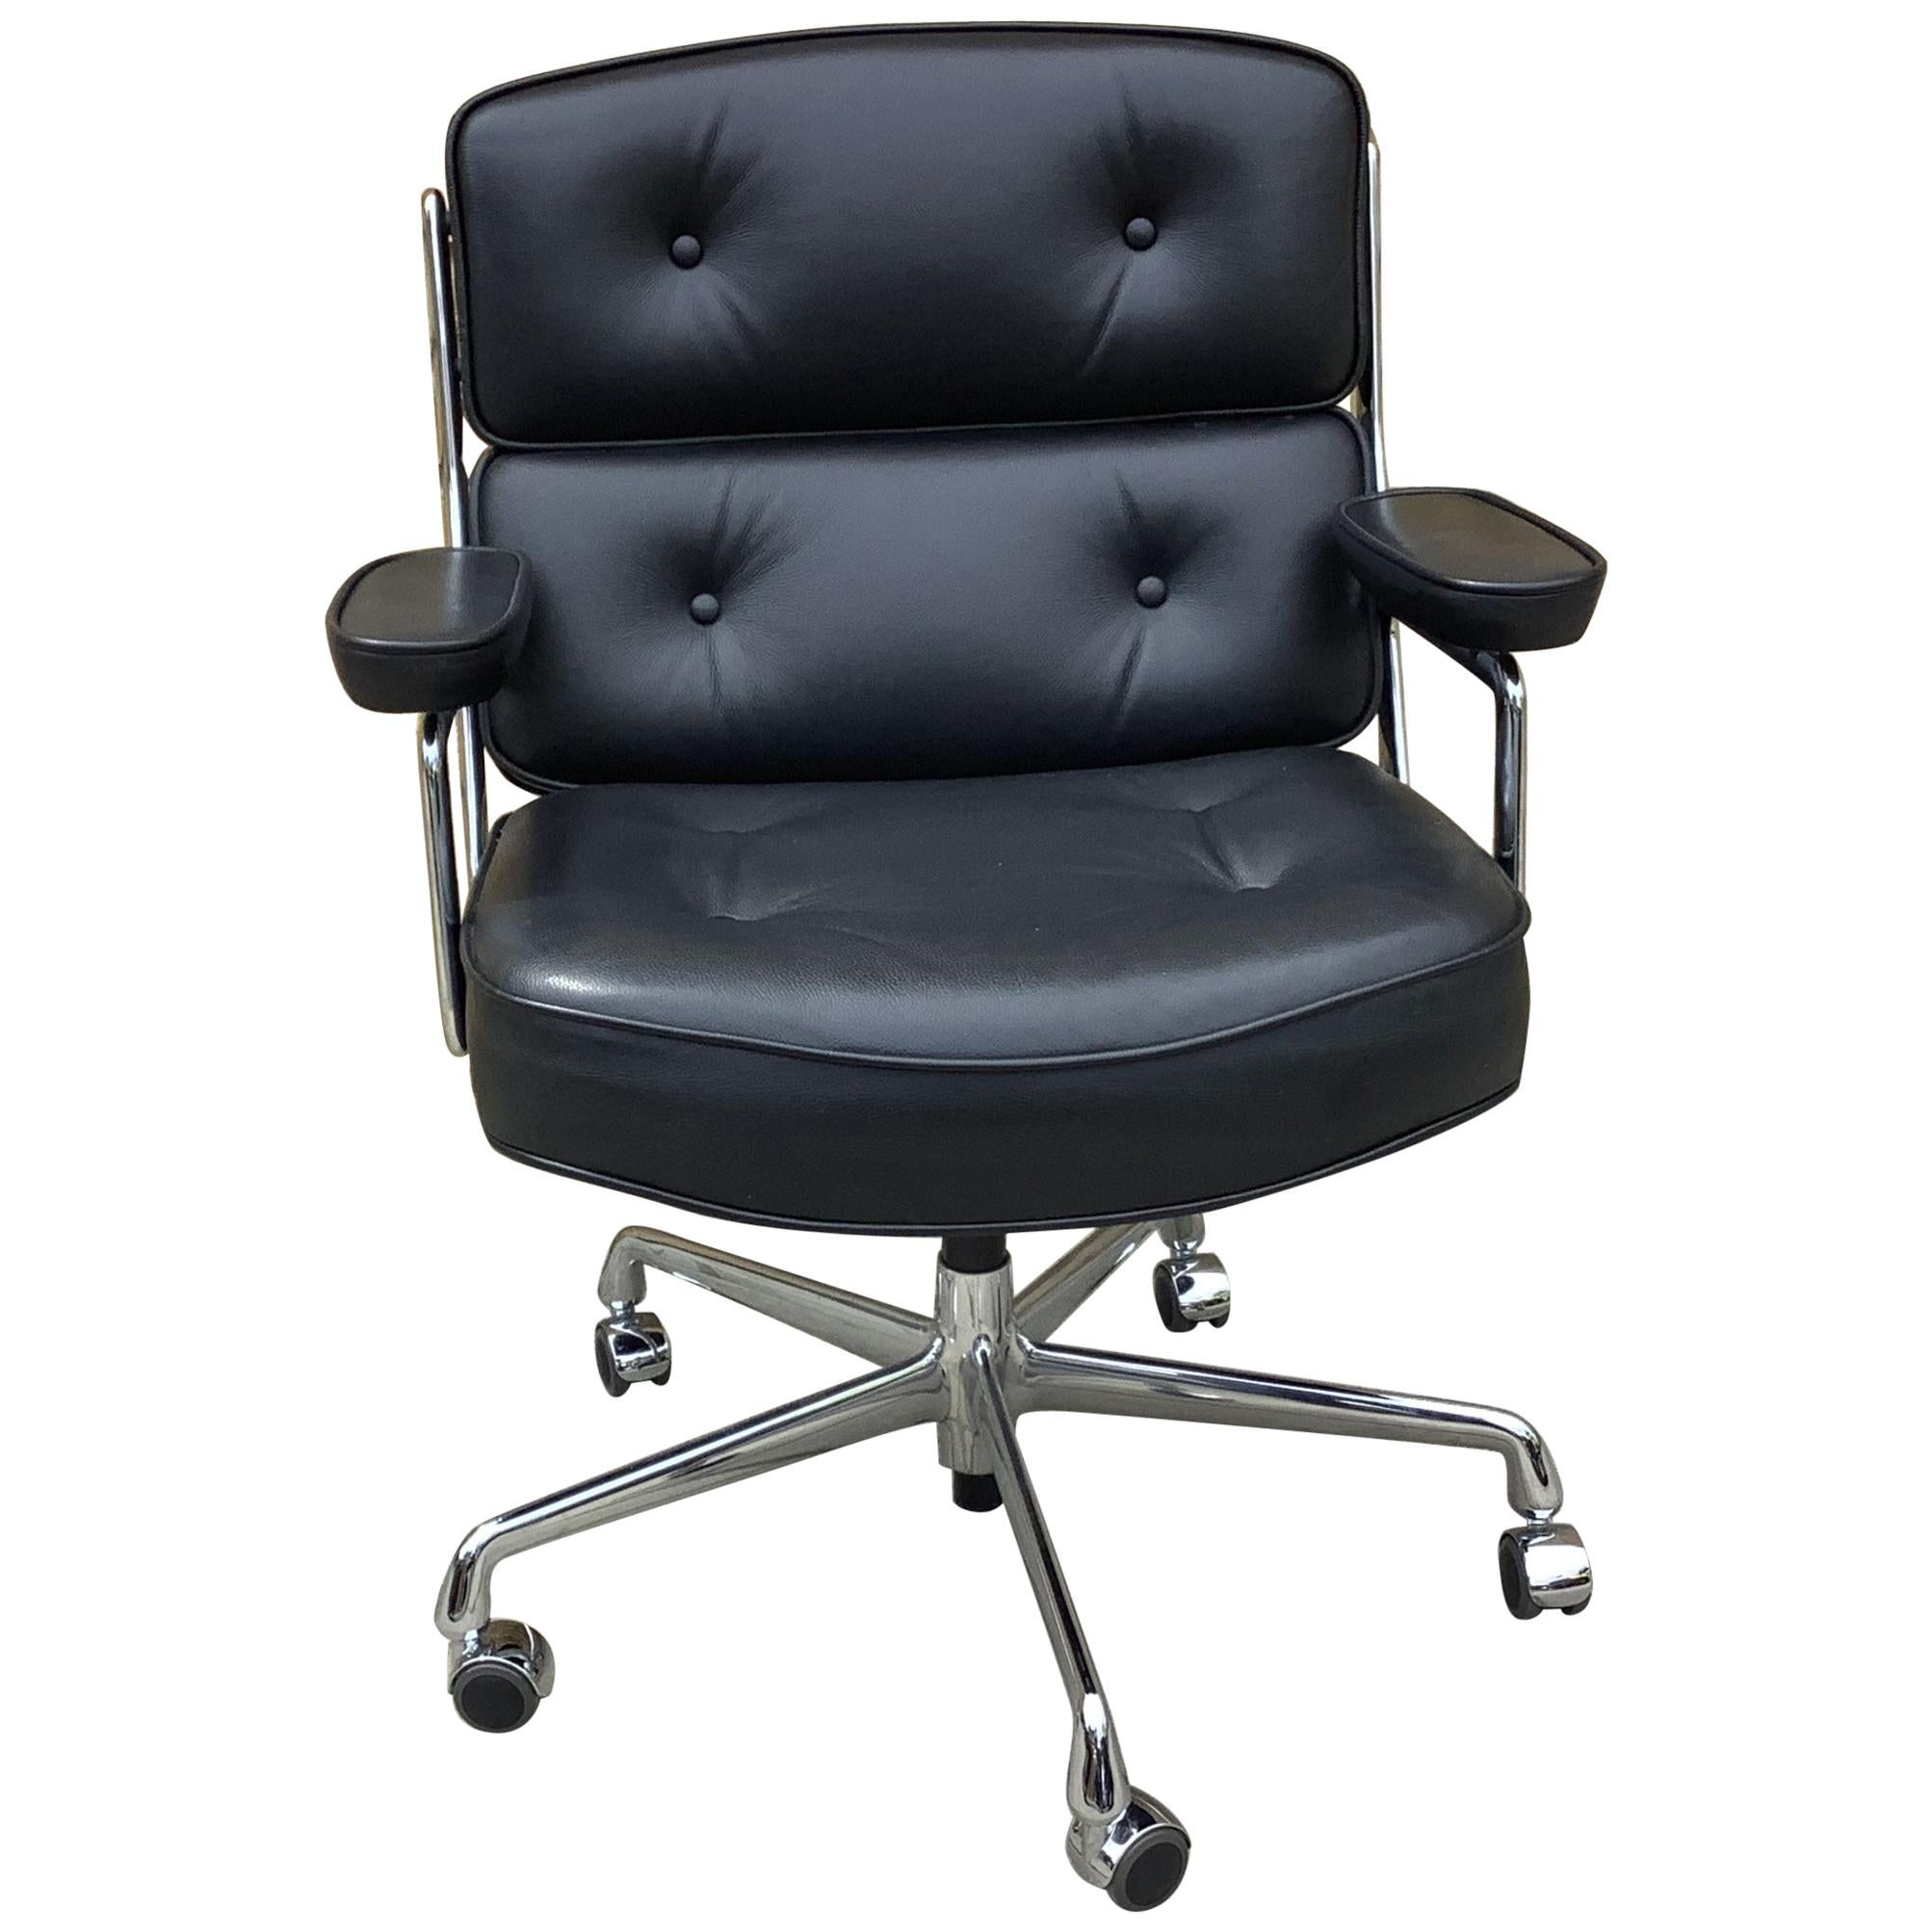 Charles & Ray Eames Time Life Office Chair/Es 104 Lobby Office Chair